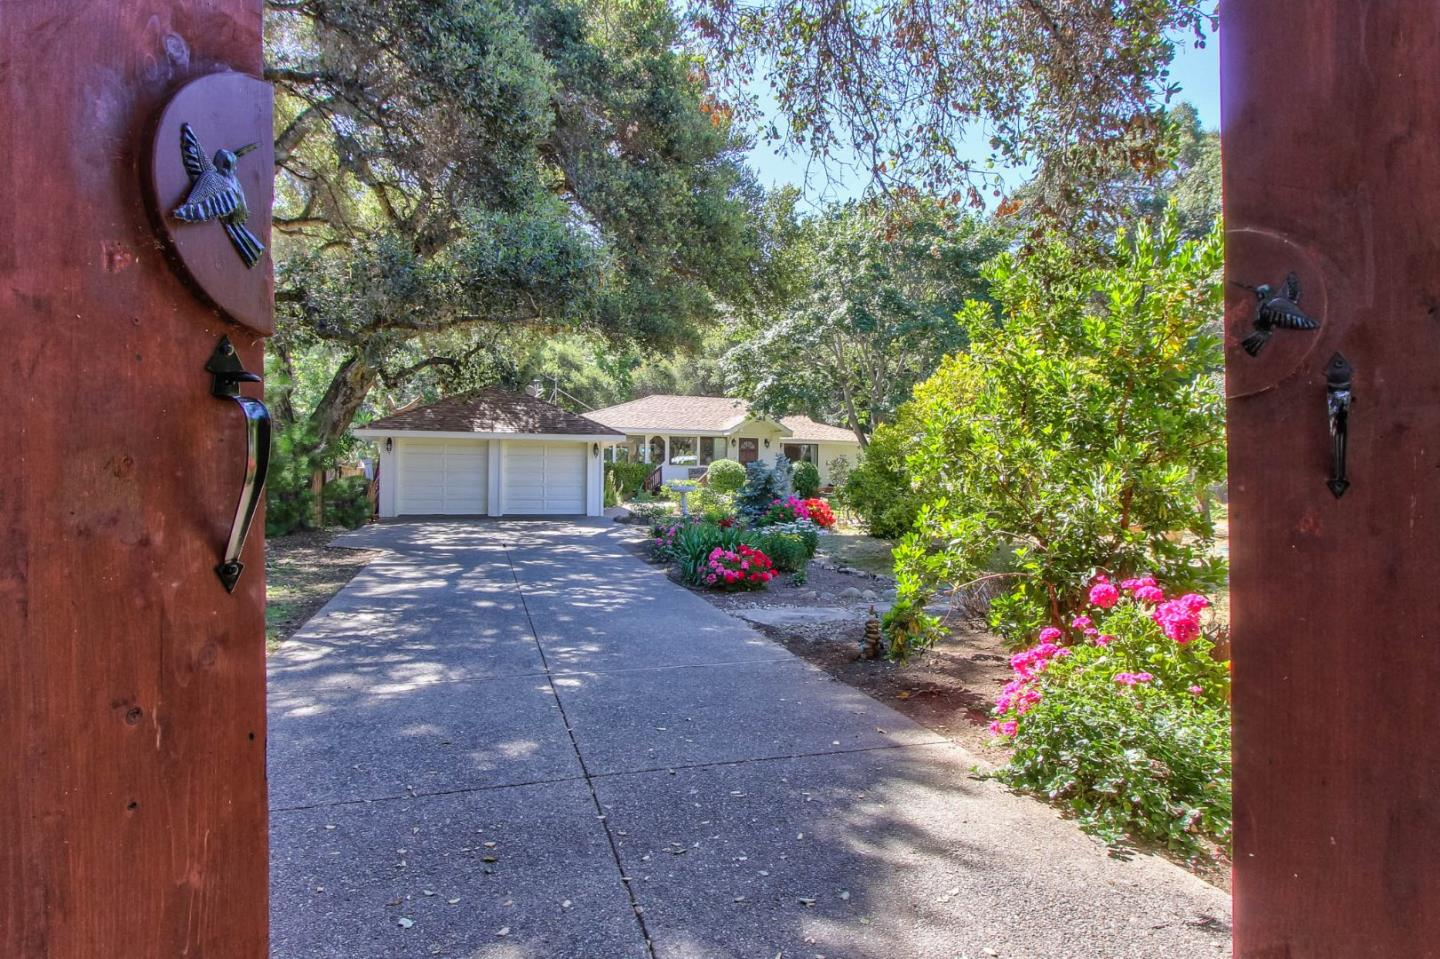 Property for sale at 10 Upper CIR, Carmel Valley,  CA 93924